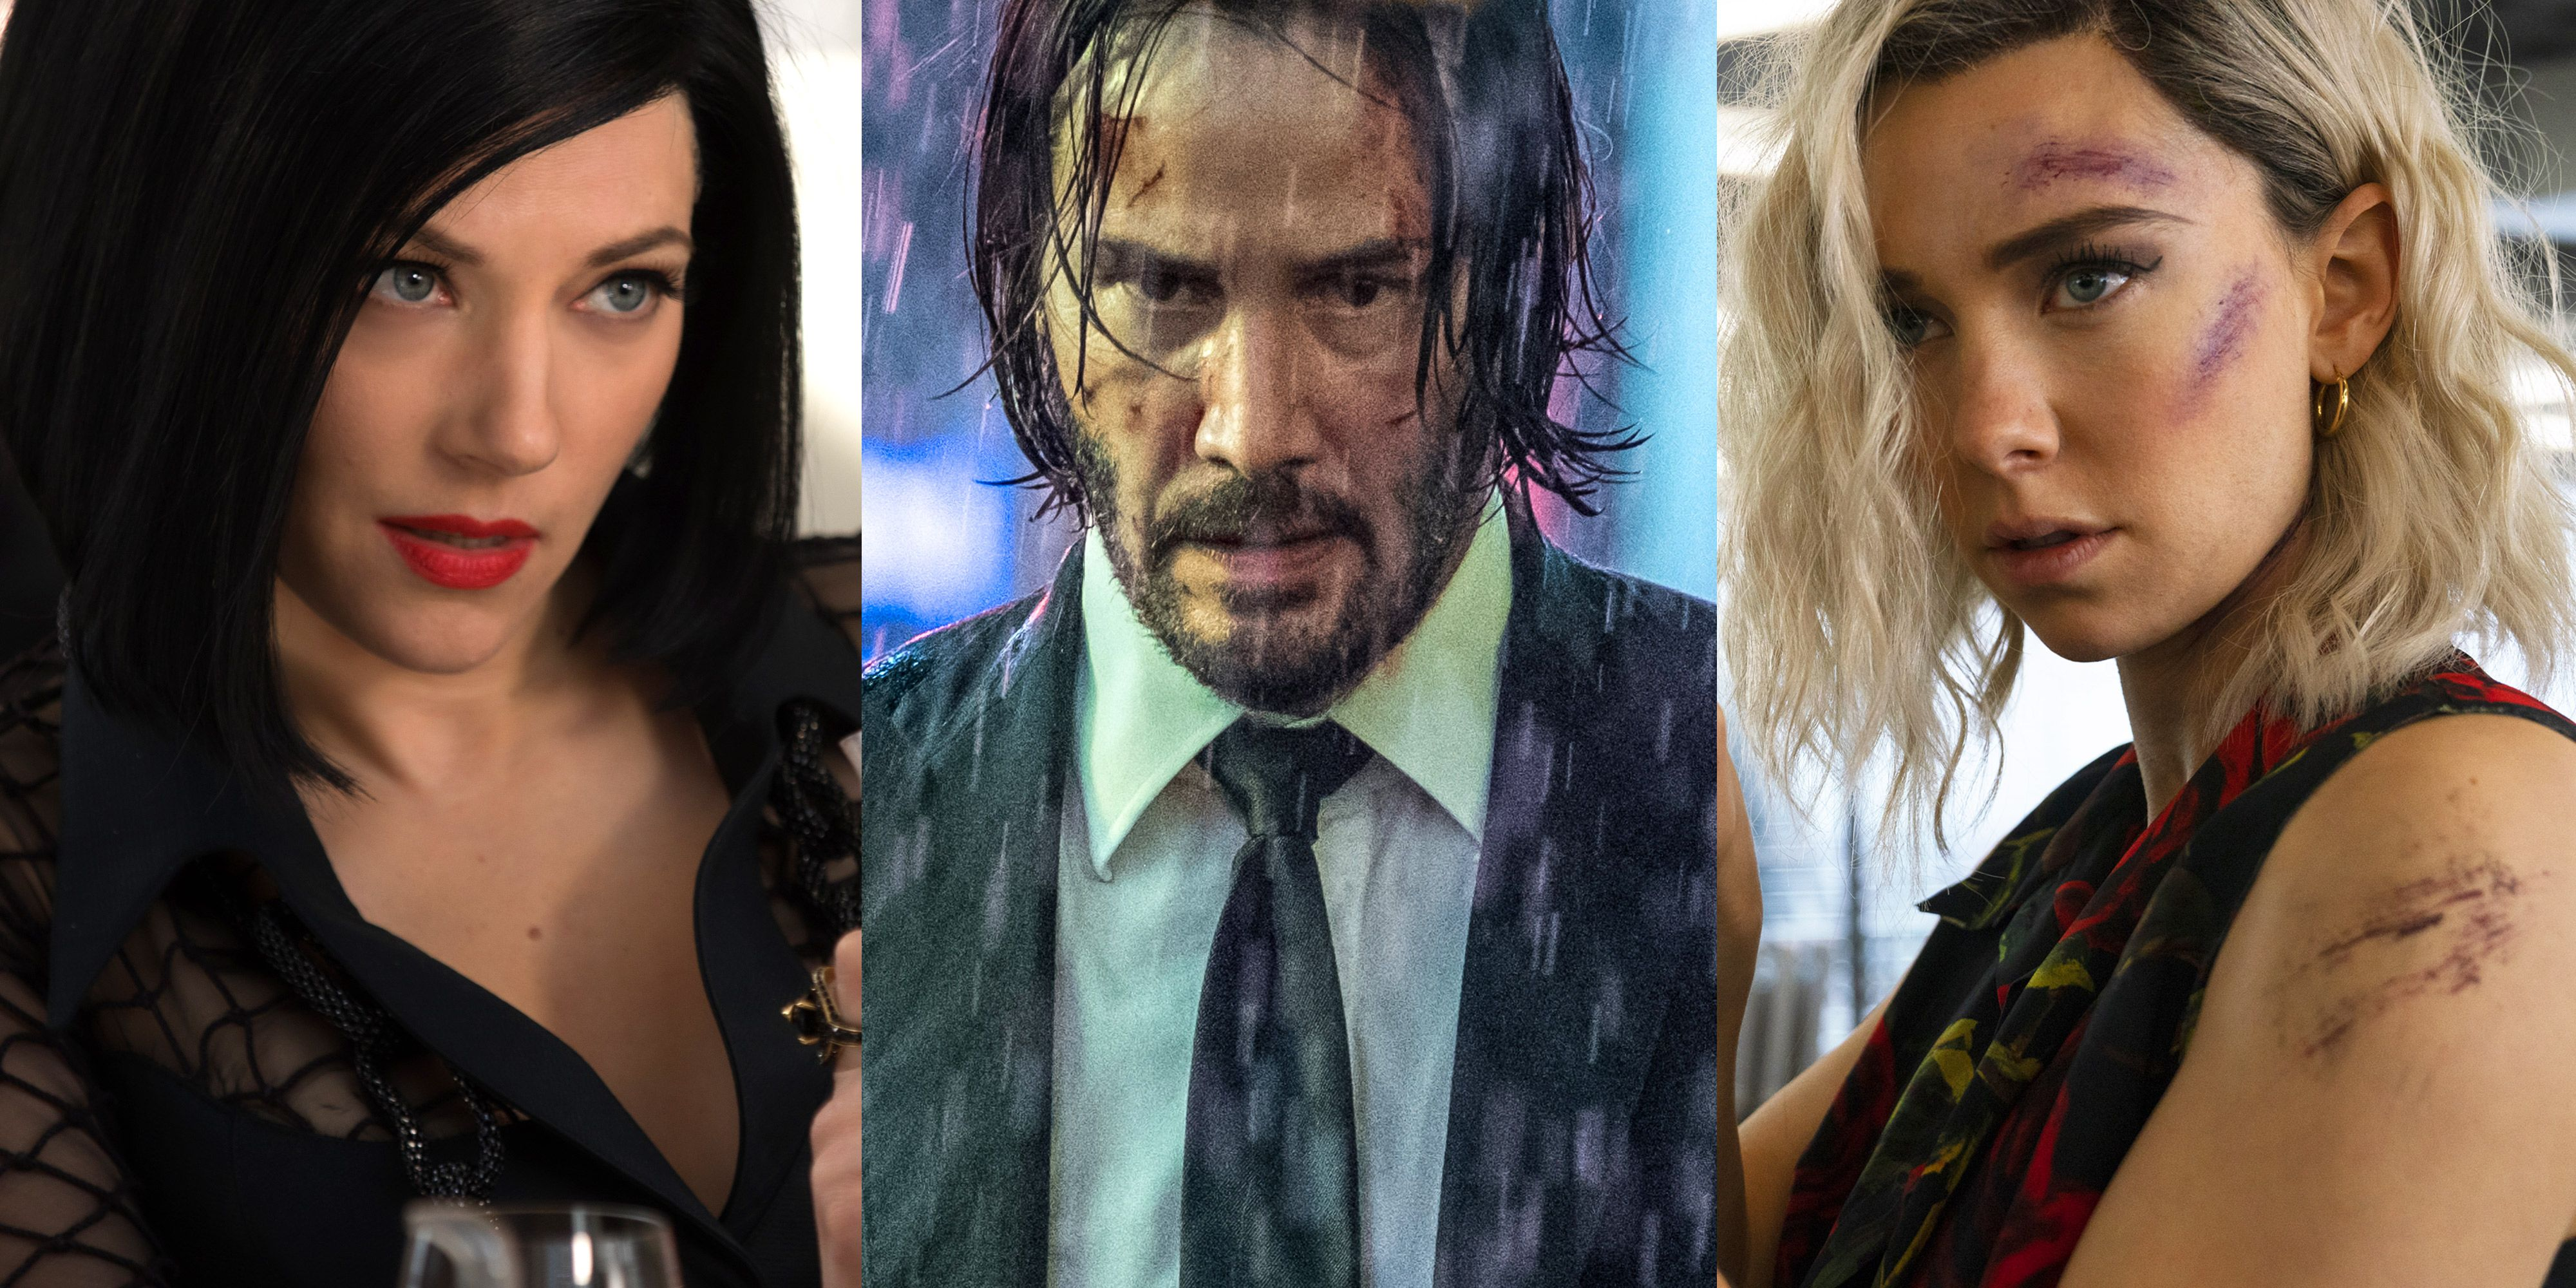 The Best New Action Movies to Get You Fired Up